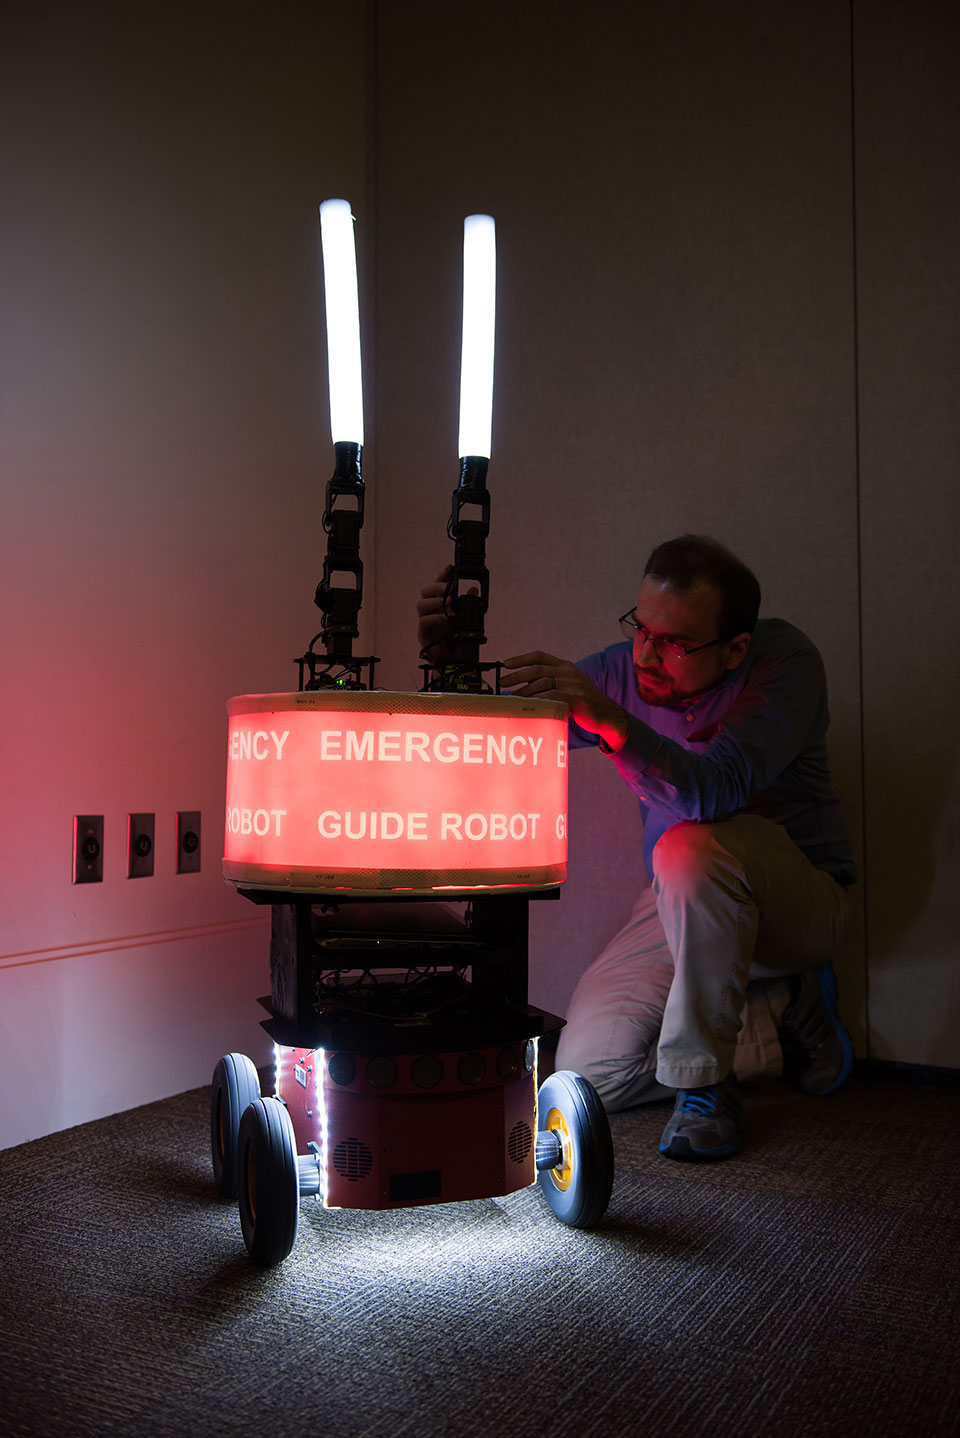 Paul Robinette adjusting the emergency guide robot